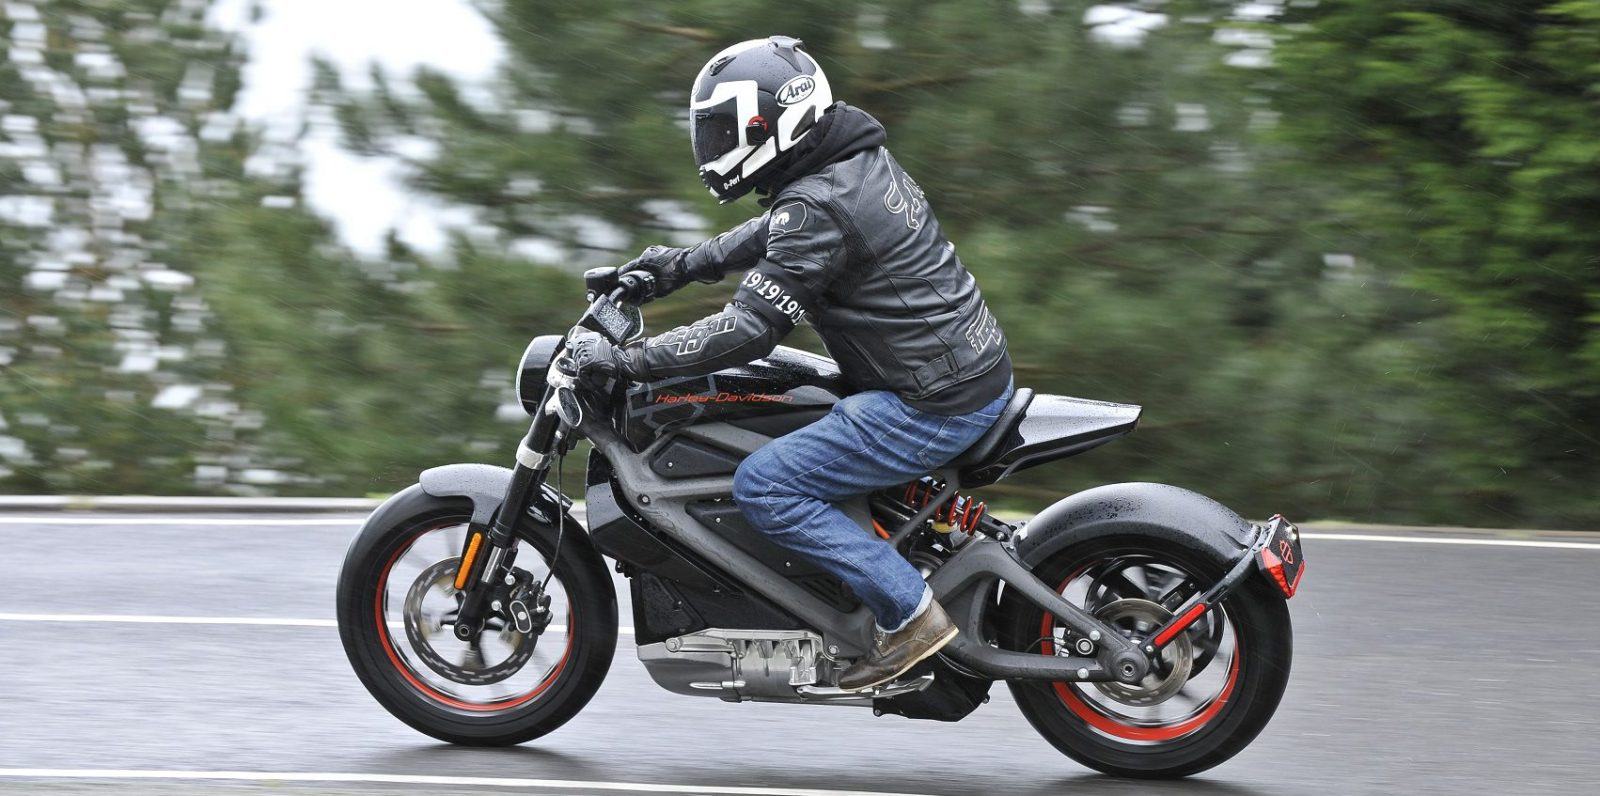 Harley Davidson Invests In Electric Motorcycle Startup Alta Motors Ahead Of Launching Its Own Bike